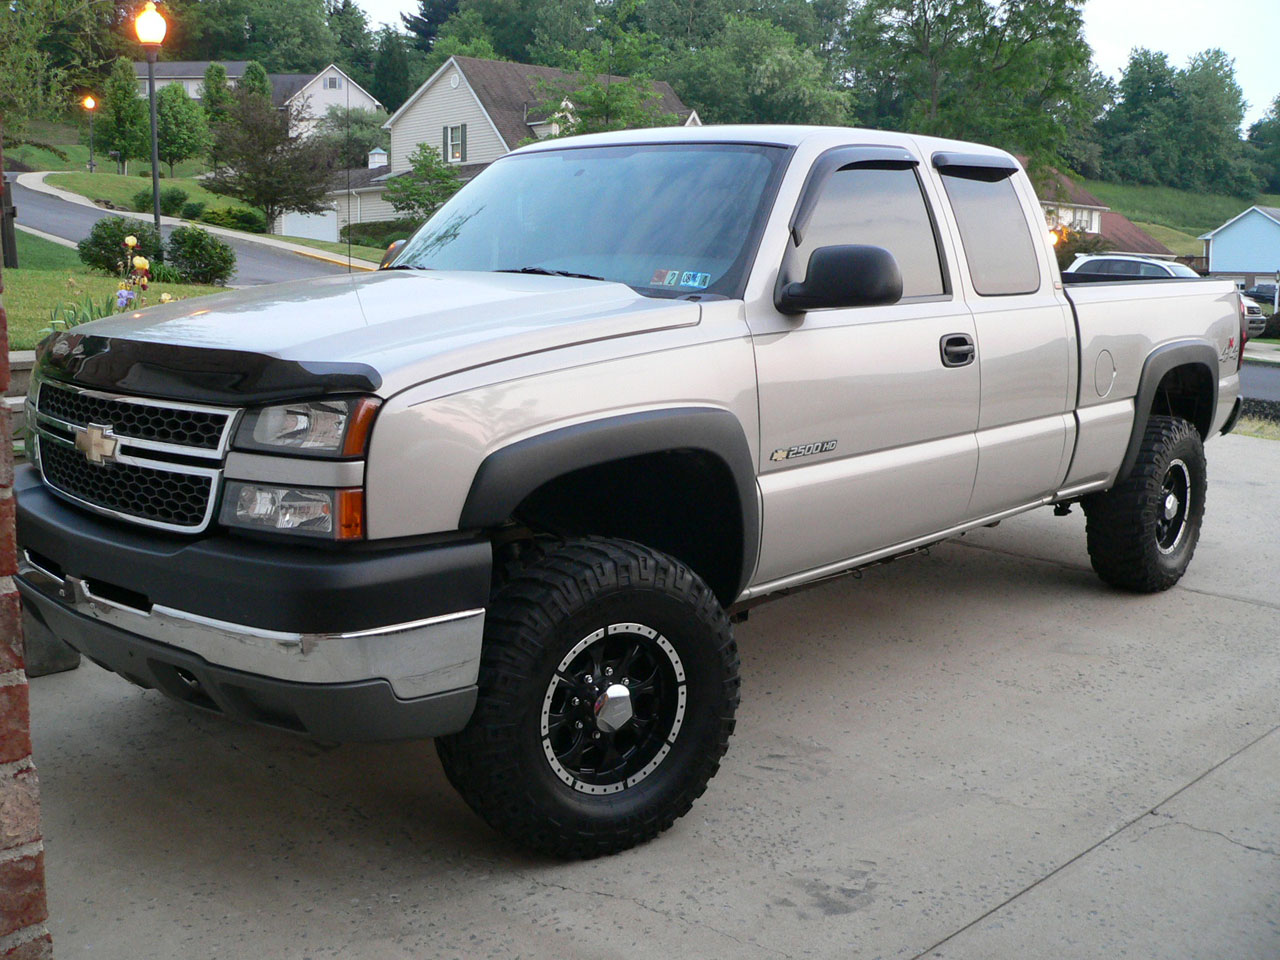 2005 Chevy Silverado 2500HD